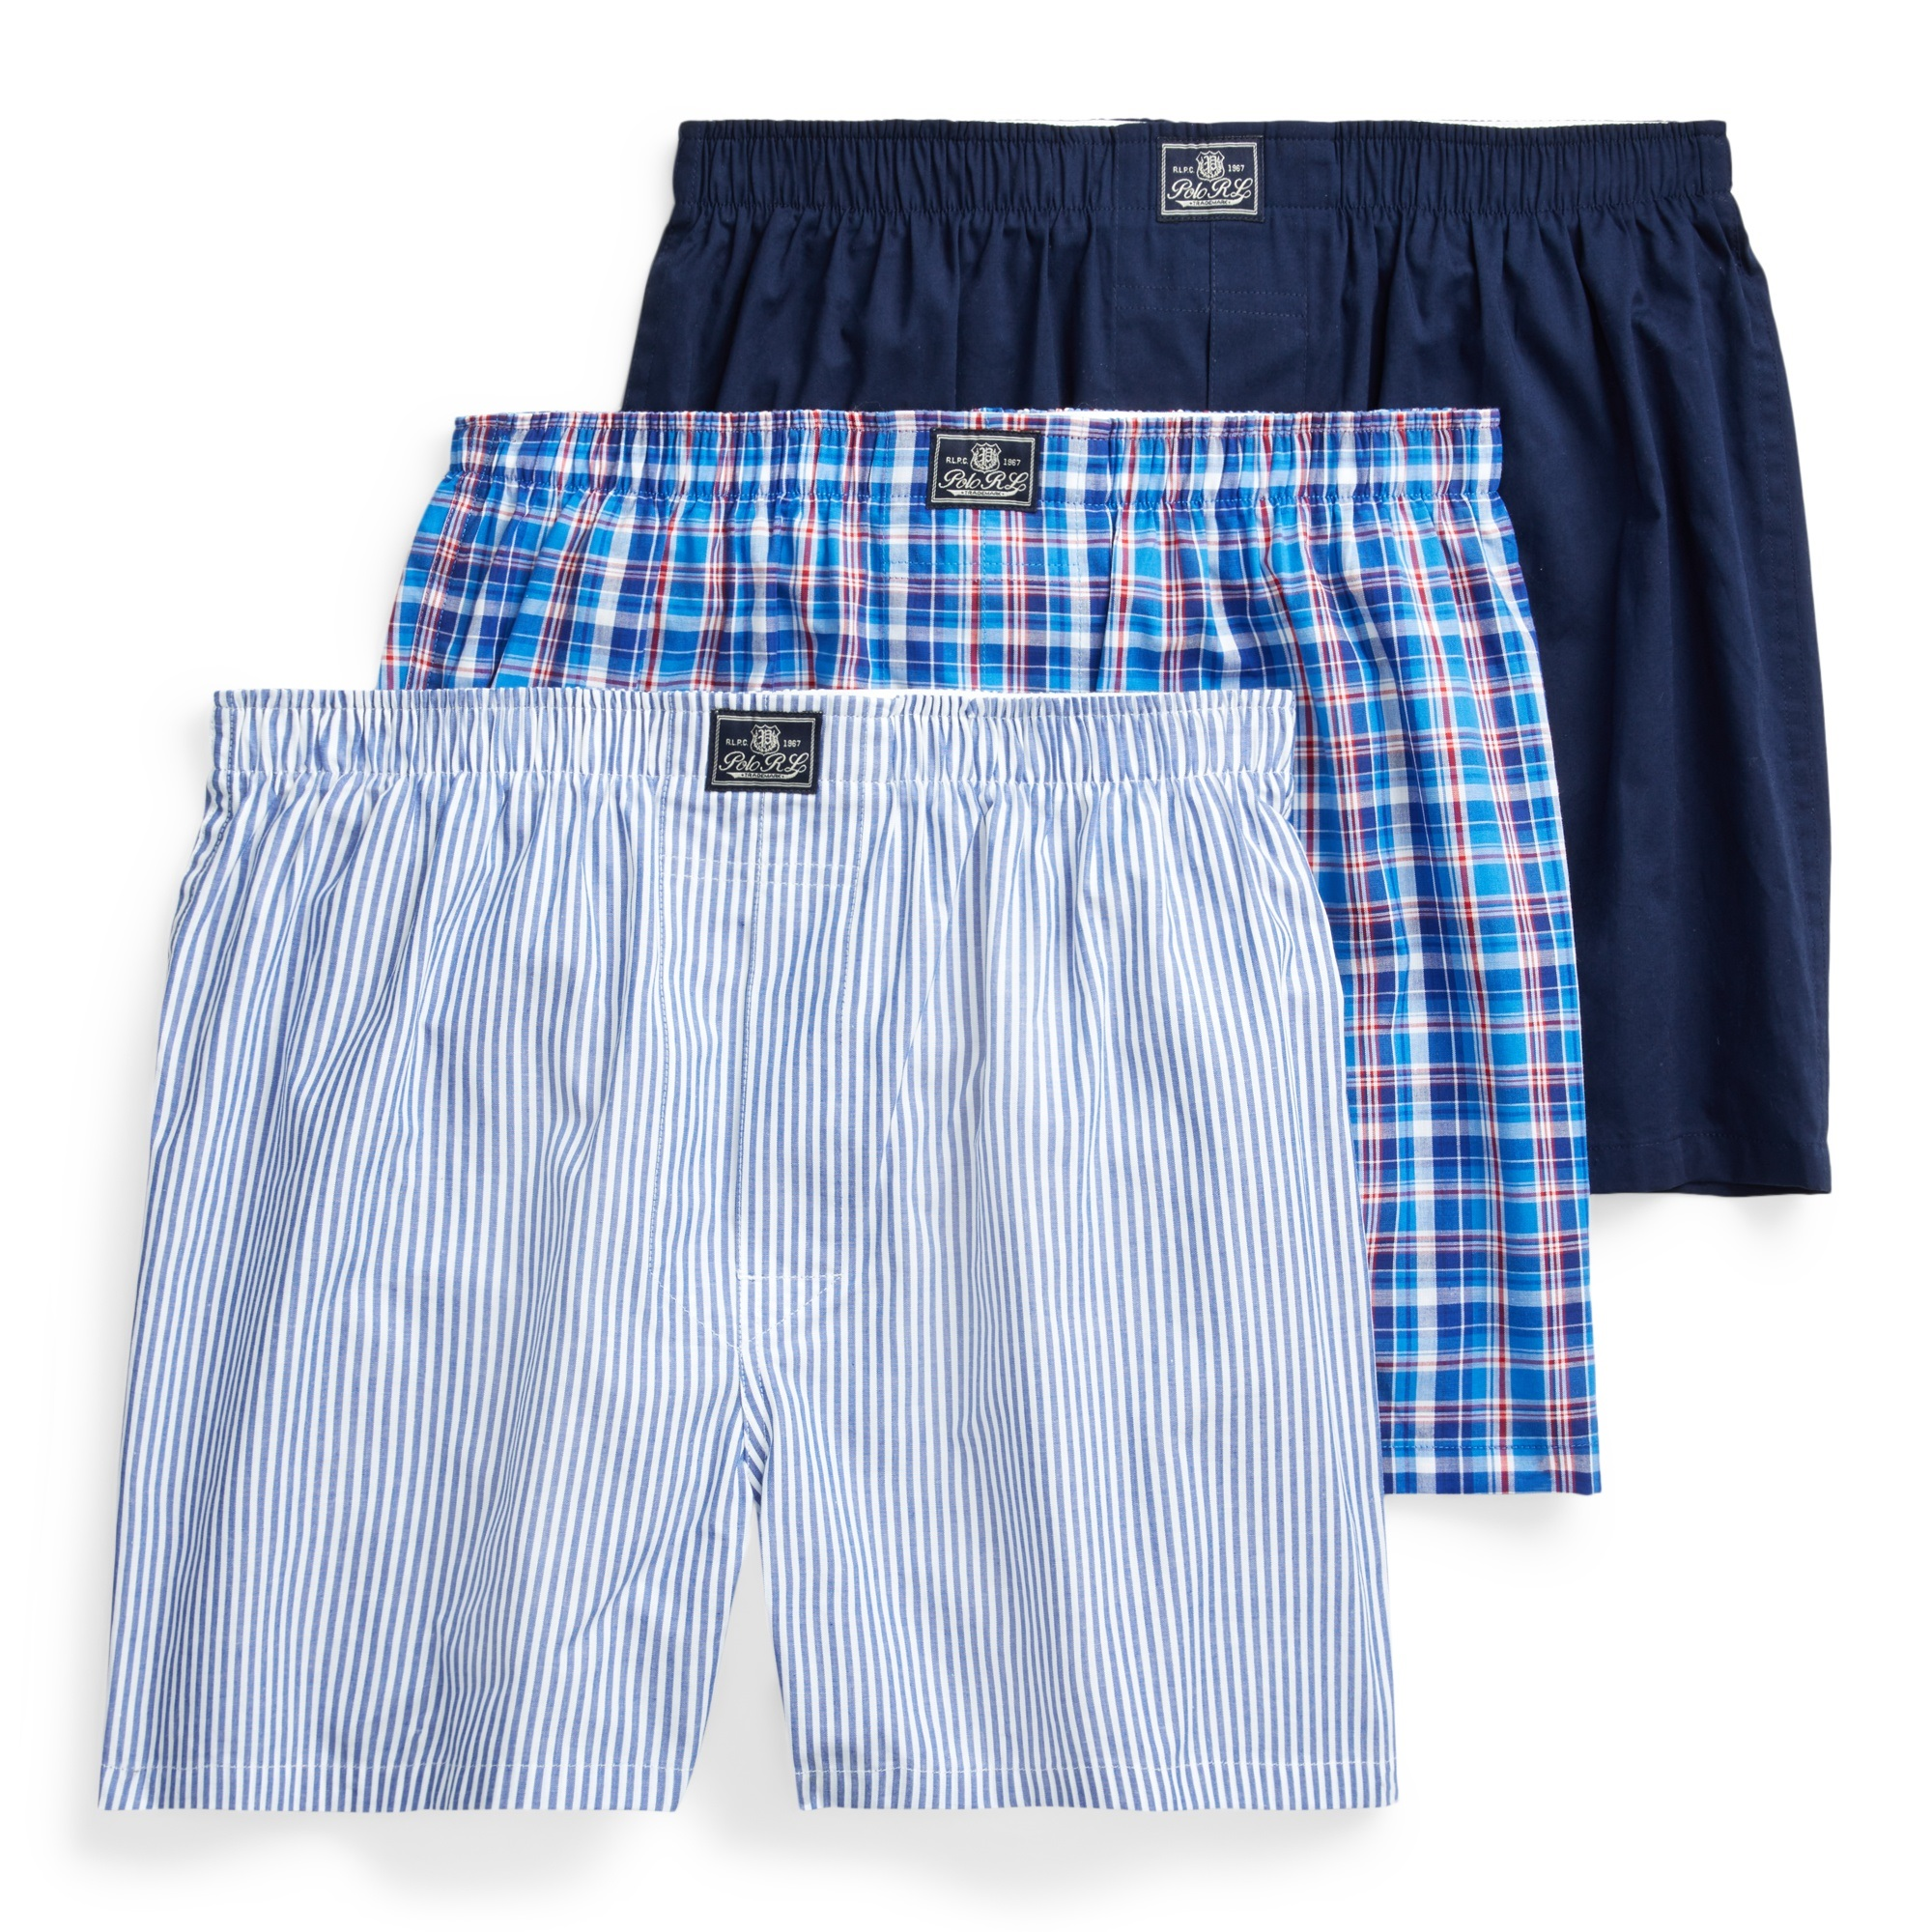 Ralph Lauren 3-pak boxershorts, mad strp/ray pld/crs nvy, x-large